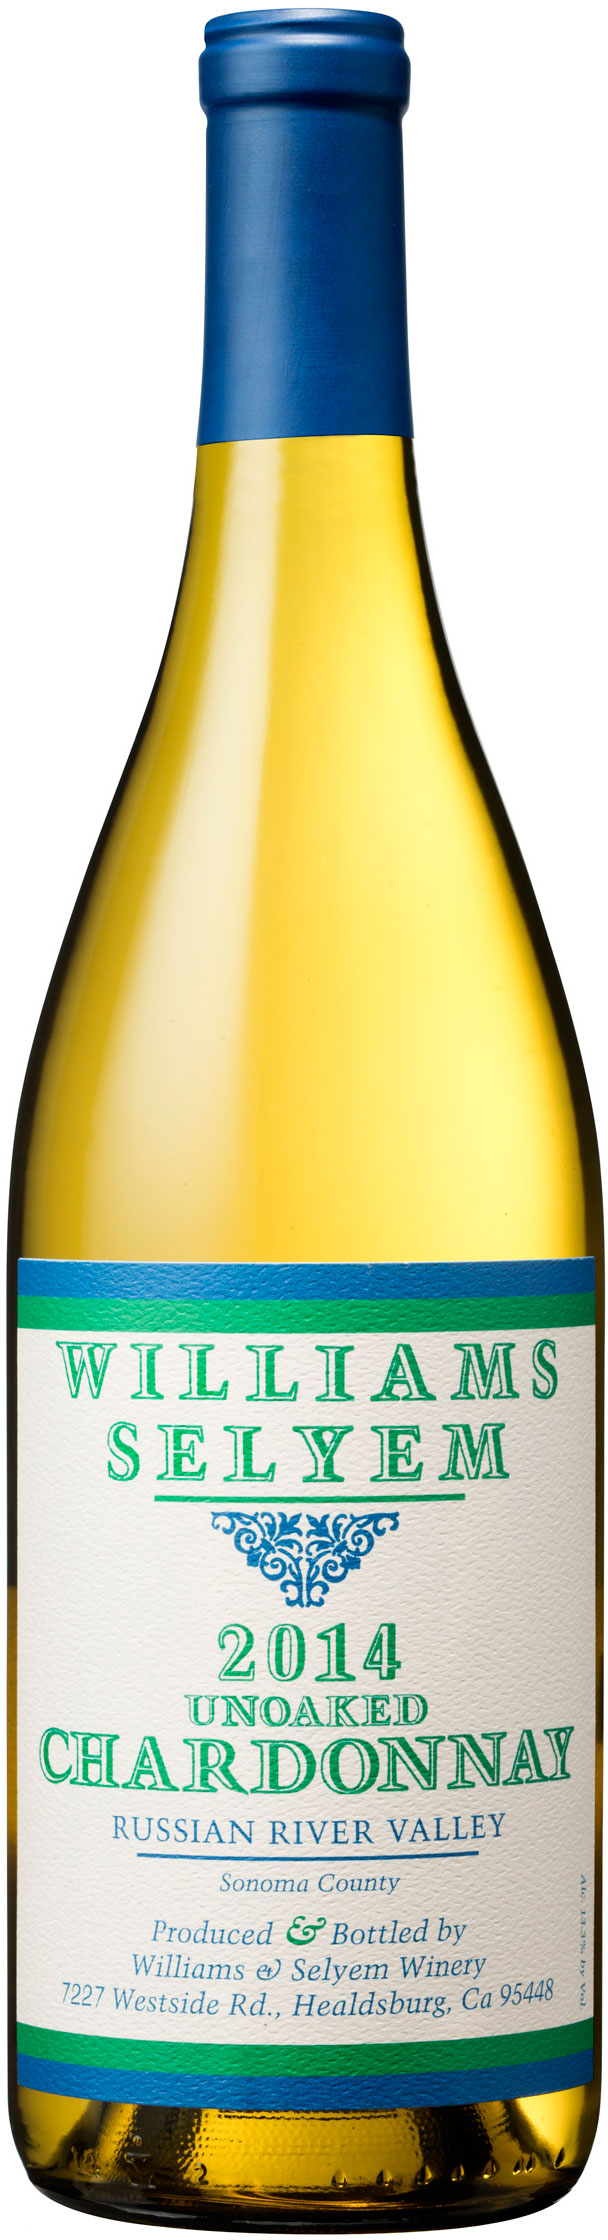 Williams Selyem - Unoaked Chardonnay 2014 12x 75cl Bottles